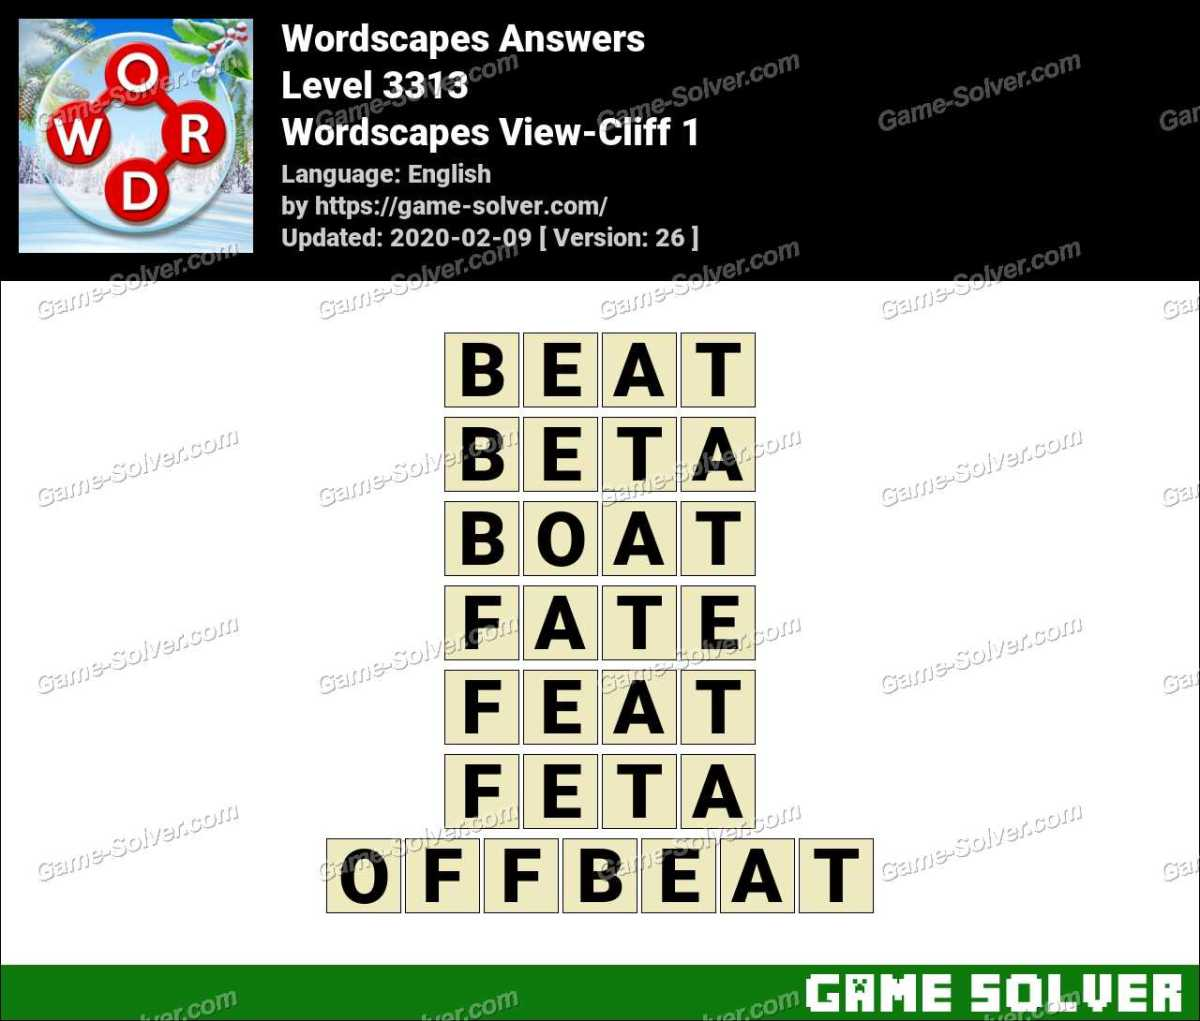 Wordscapes View-Cliff 1 Answers